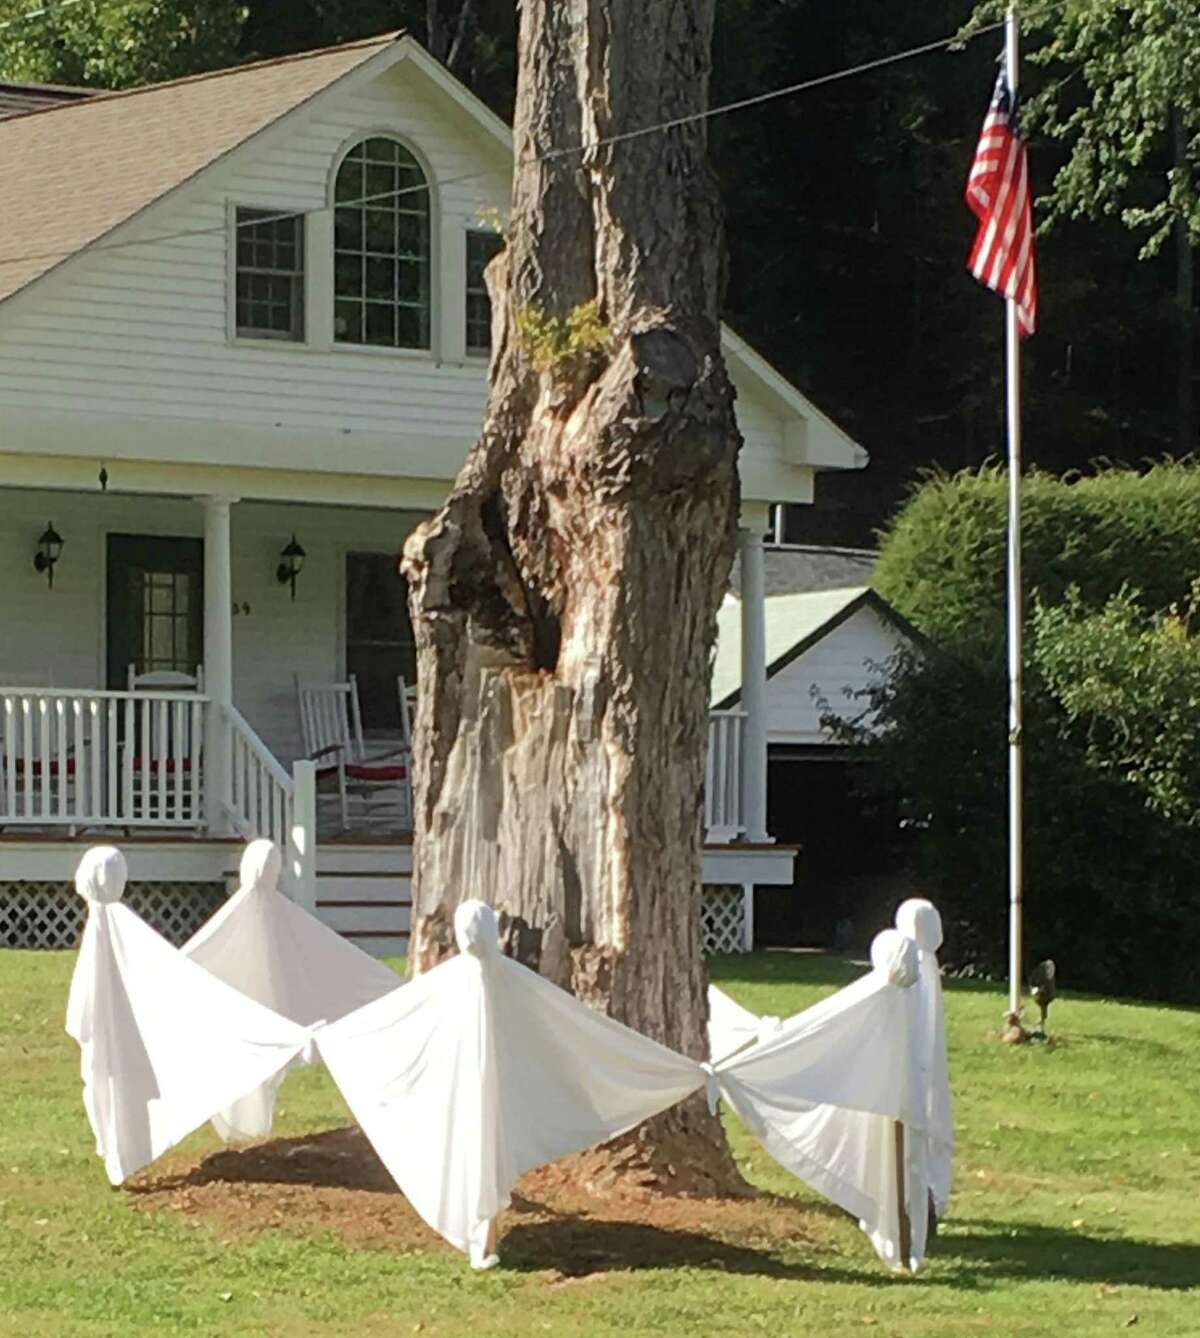 There's been a bit of a buzz about the spirited activity happening on River Road in Washington lately. In the spirit of Halloween, Debbee and Frank Tomczyk constructed a display of ghosts holding hands and dancing around a large tree in their yard. Debbee said she saw a similar design in South Britain and